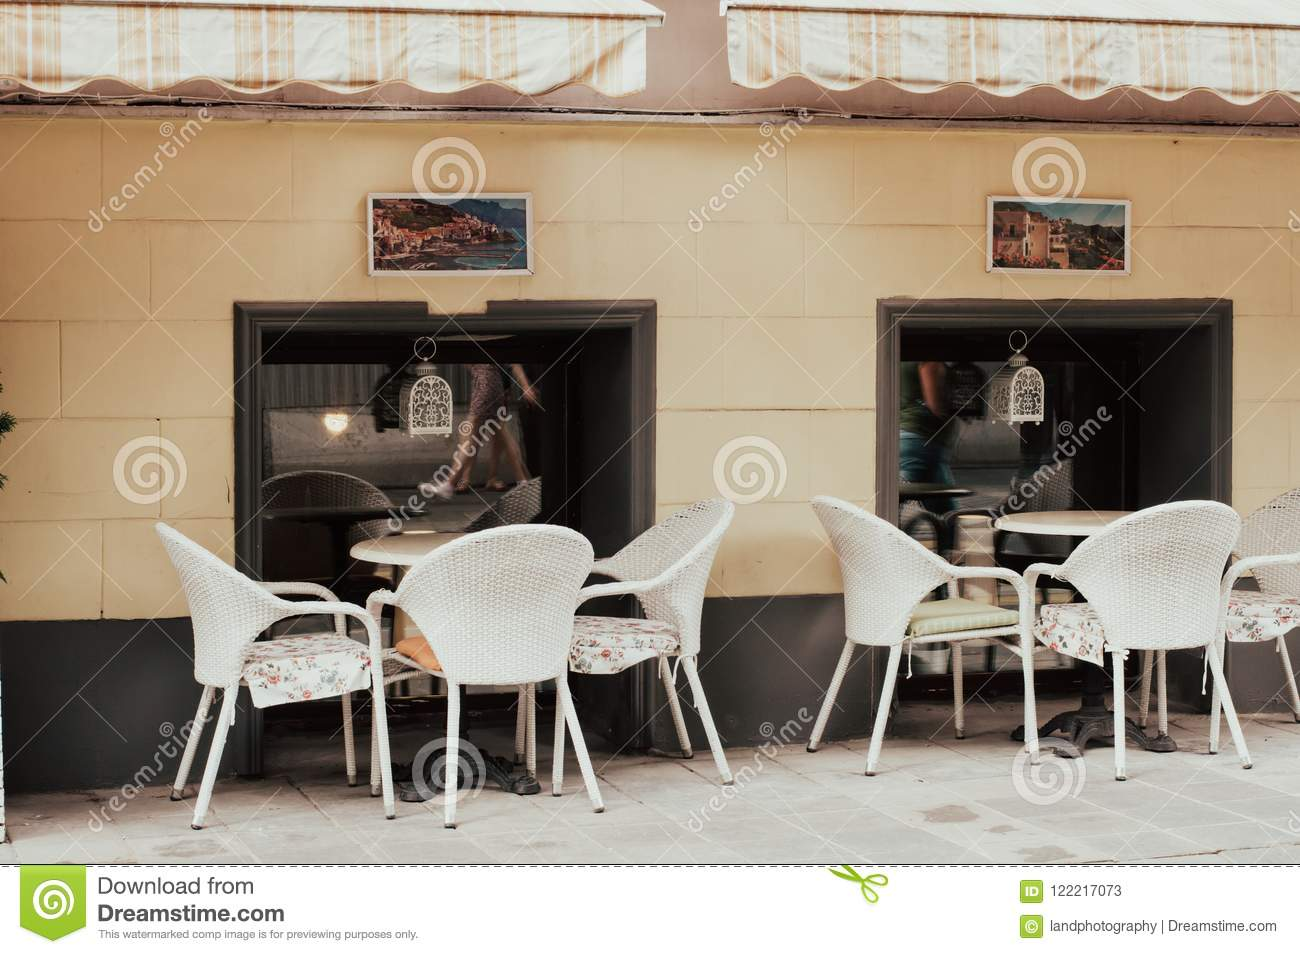 City Vintage Cafe In The Street Restaurant Exterior And Interior Tables With White Chairs Outdoors